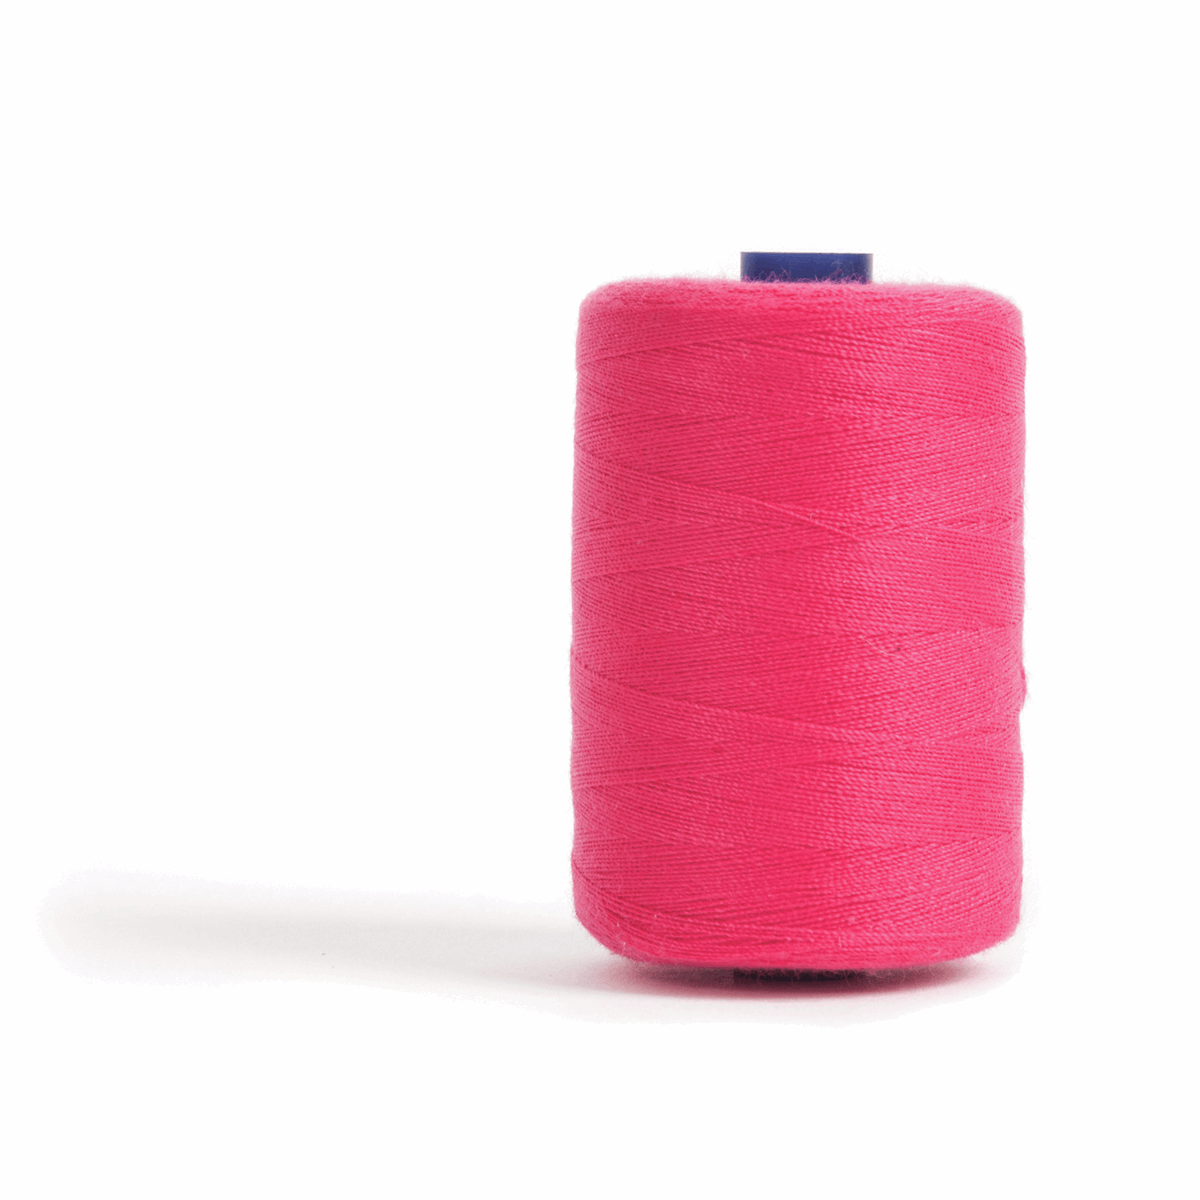 Picture of Sewing and Overlocking Thread: 5 x 1,000m: Hot Pink